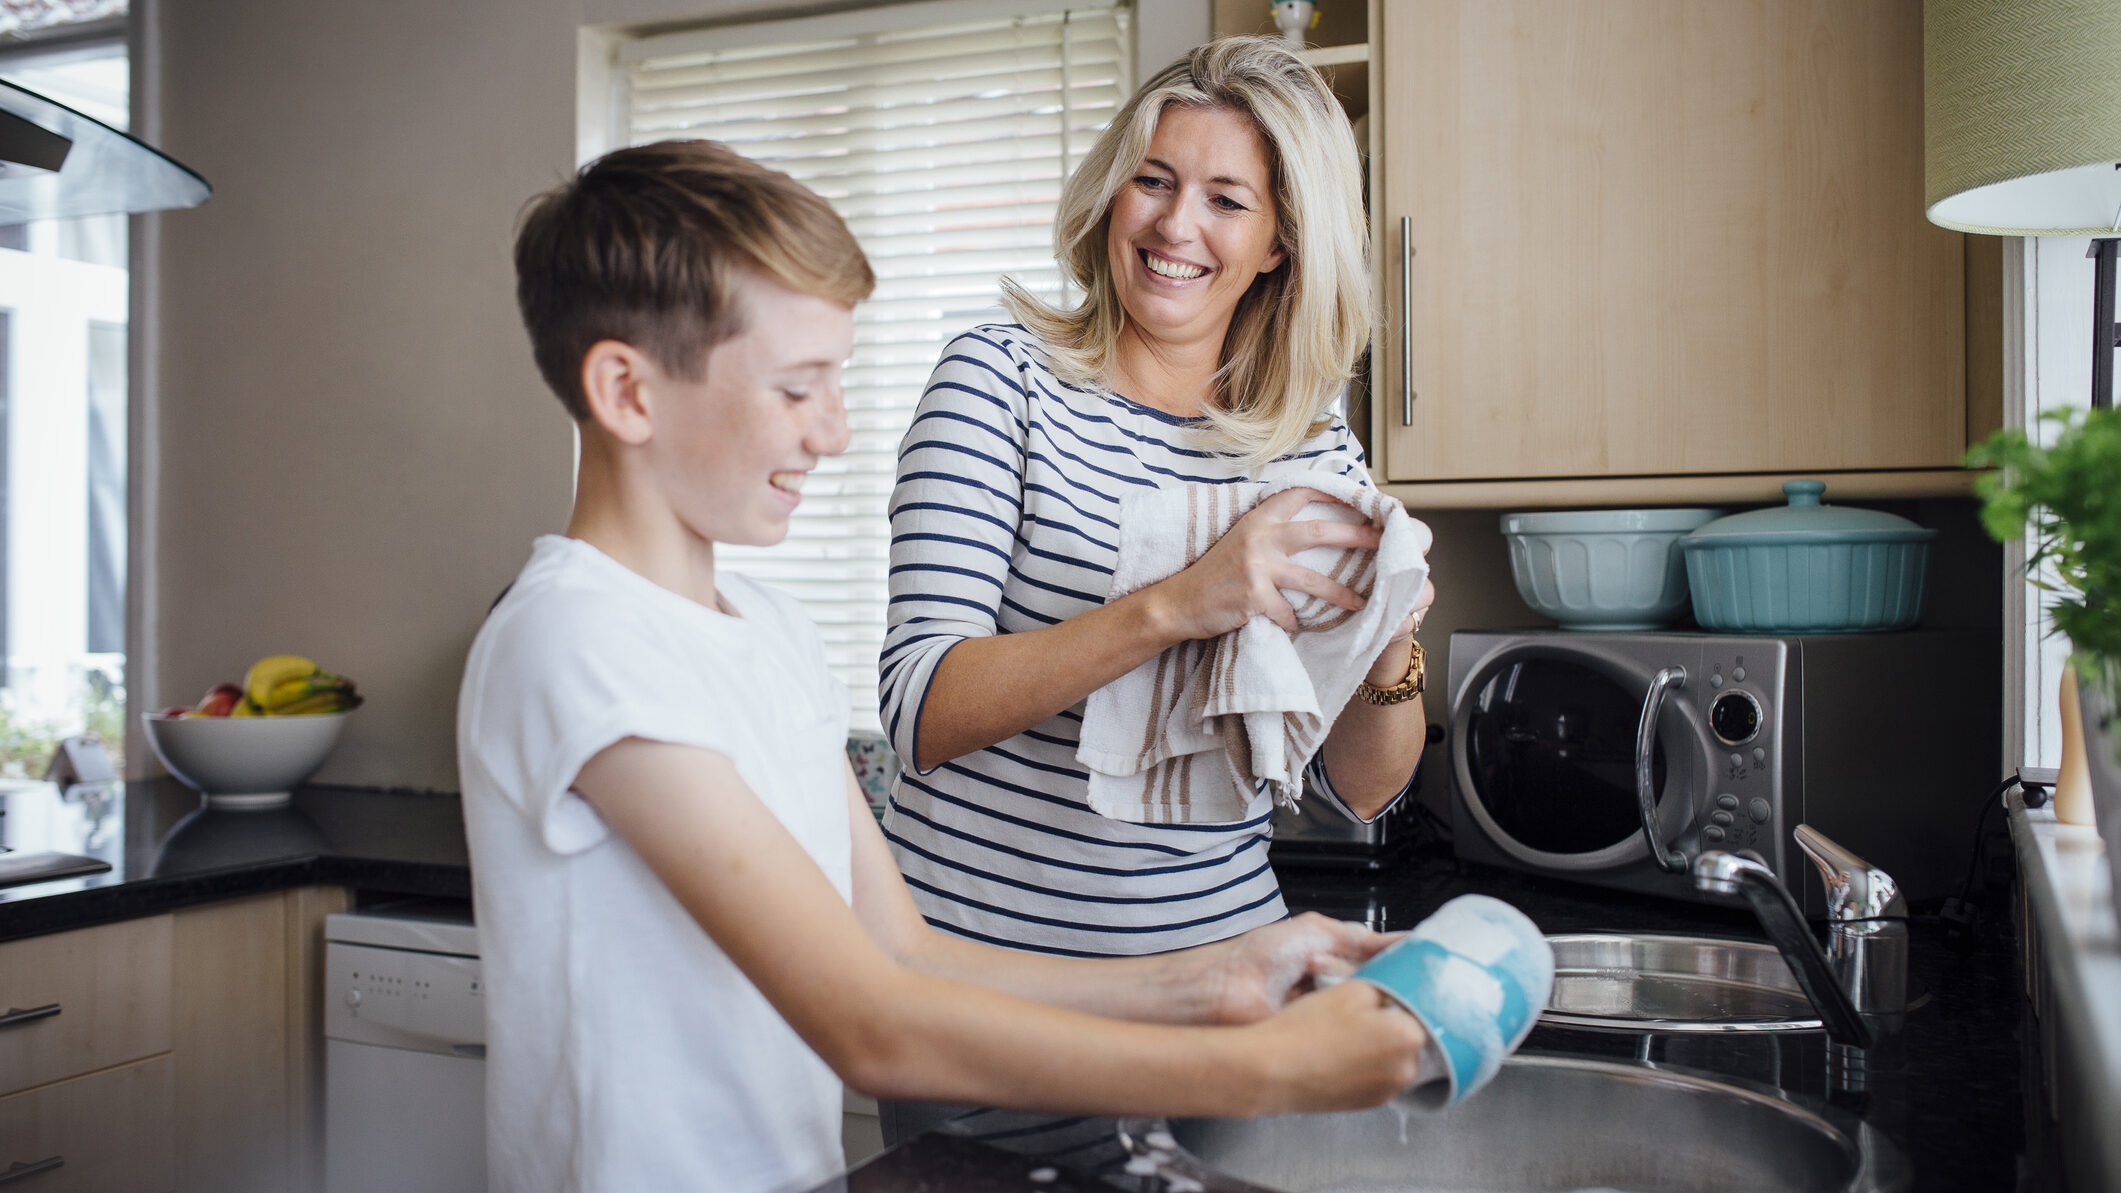 Mother and Son Doing the Dishes